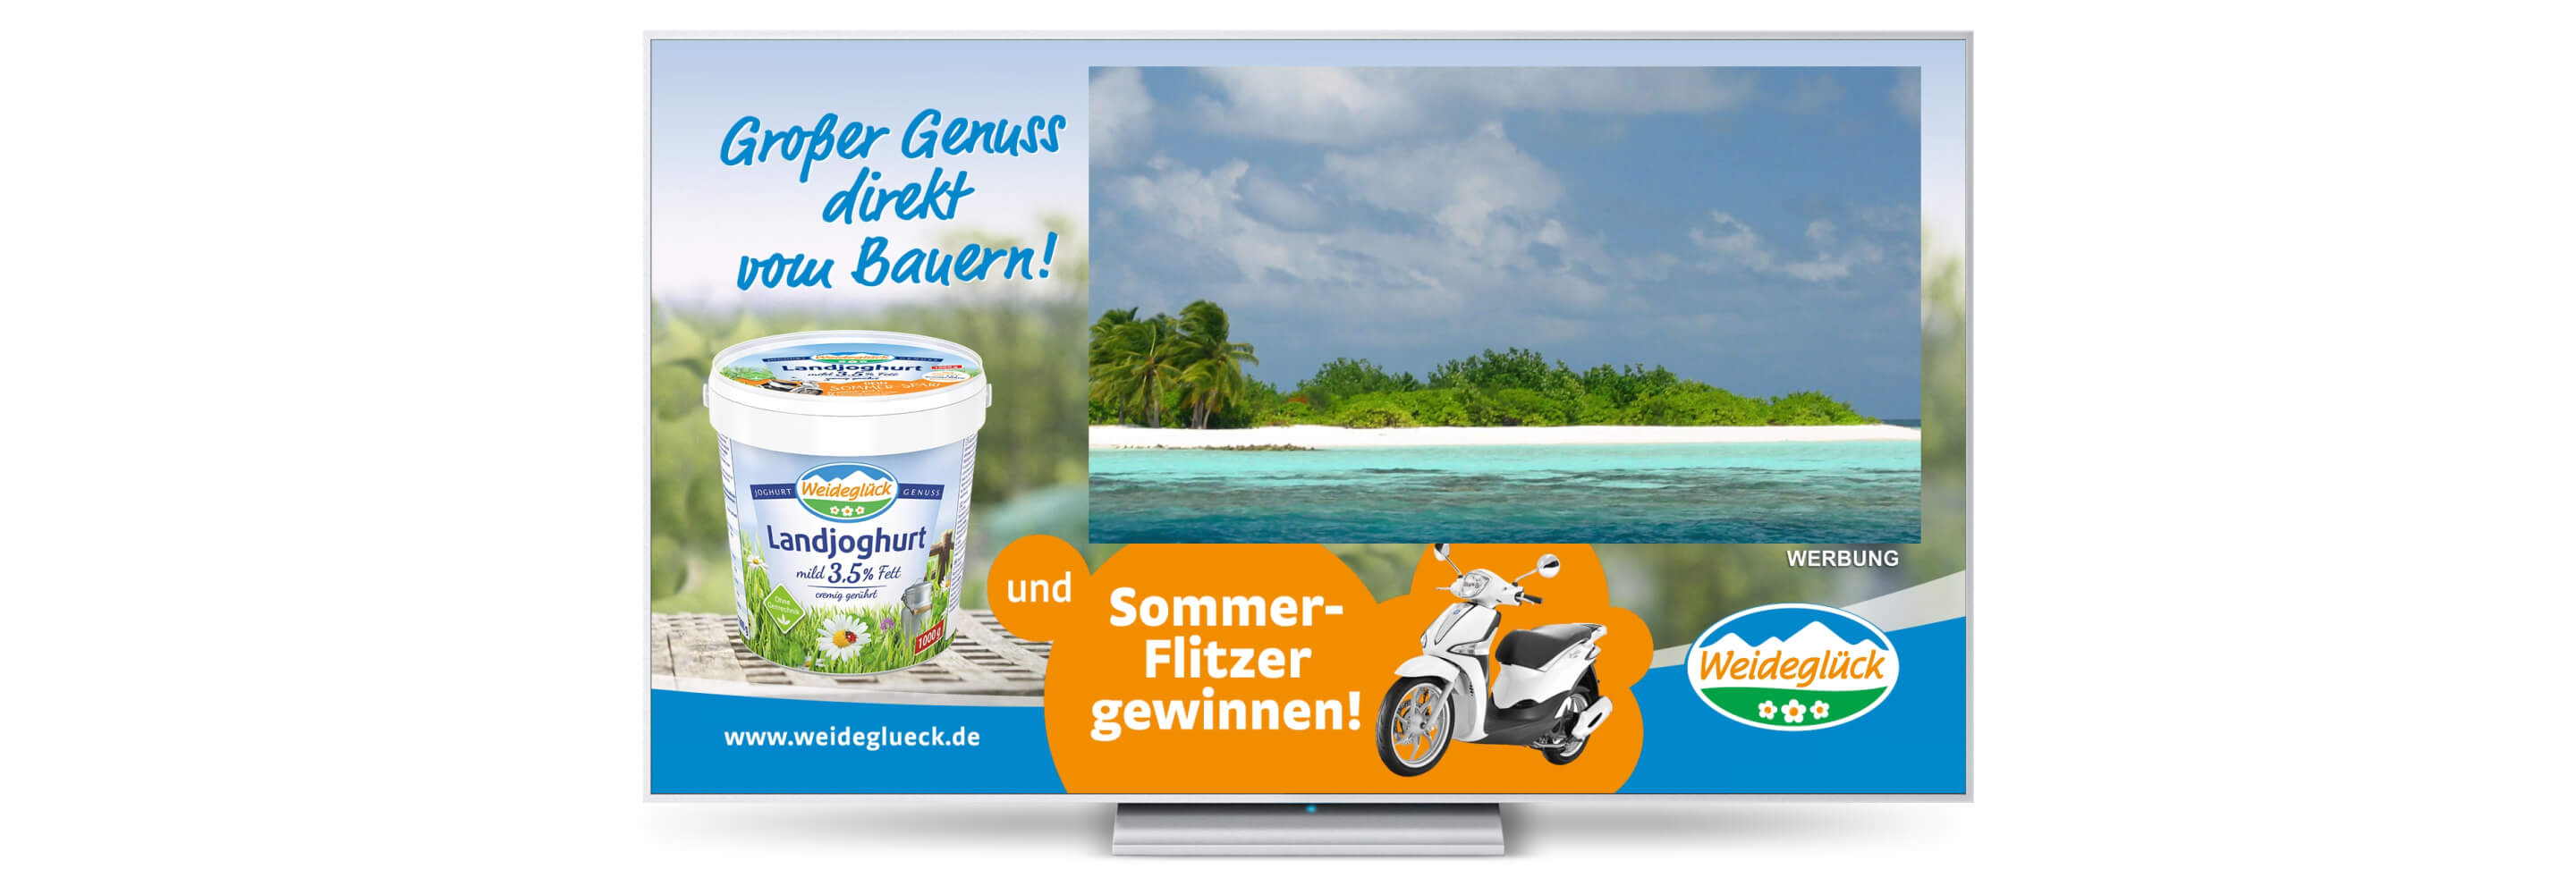 MIL_Weideglueck_TV_Header-2880x1000